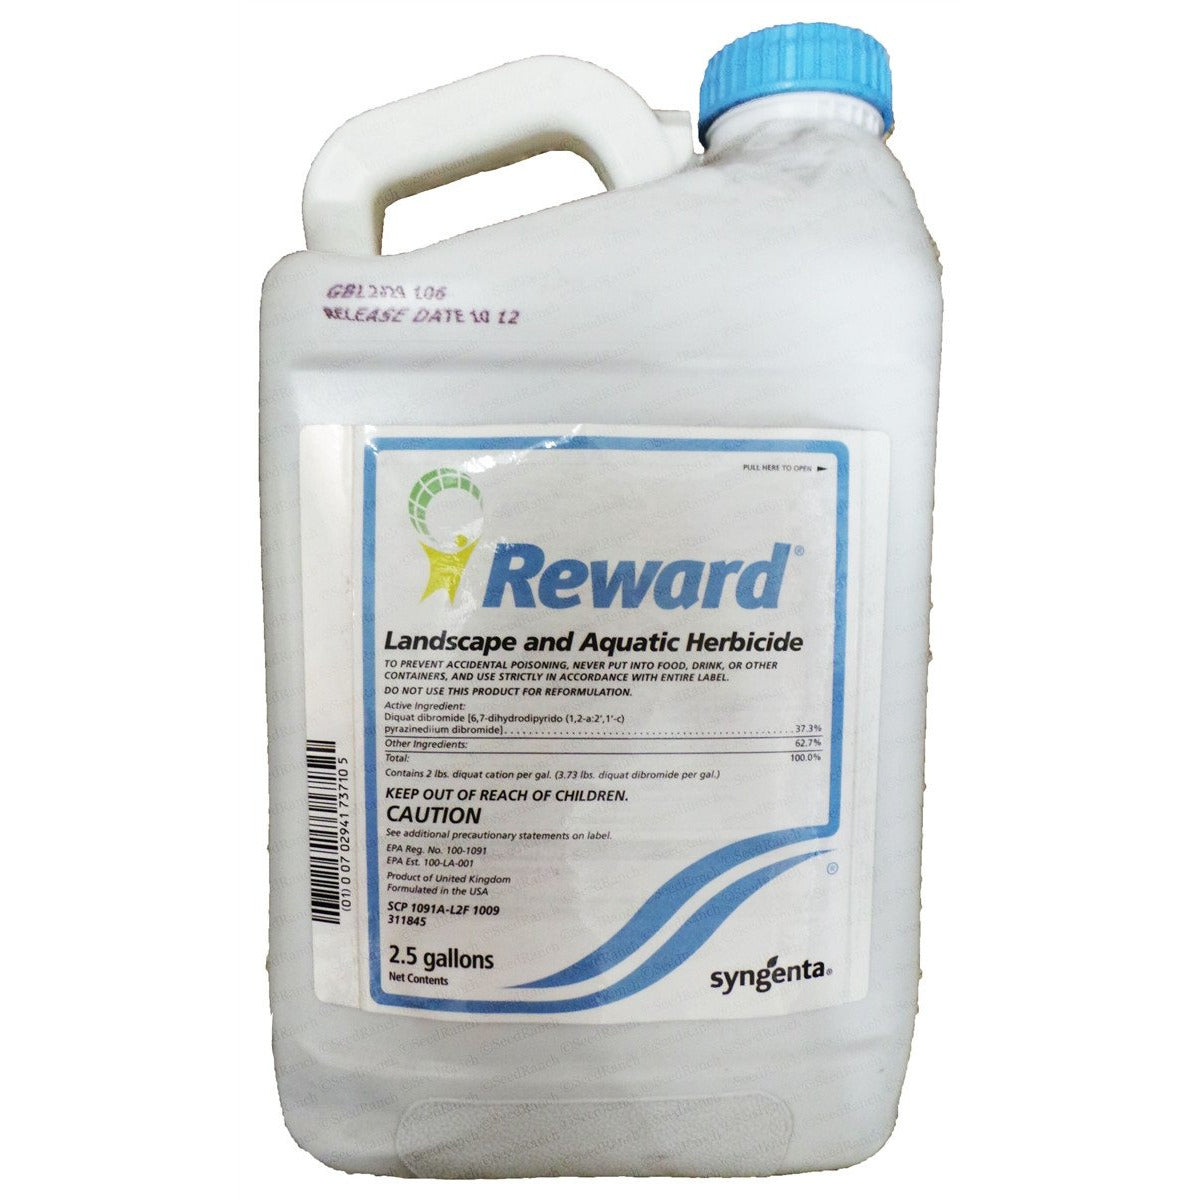 Syngenta Branded Products - Seed World